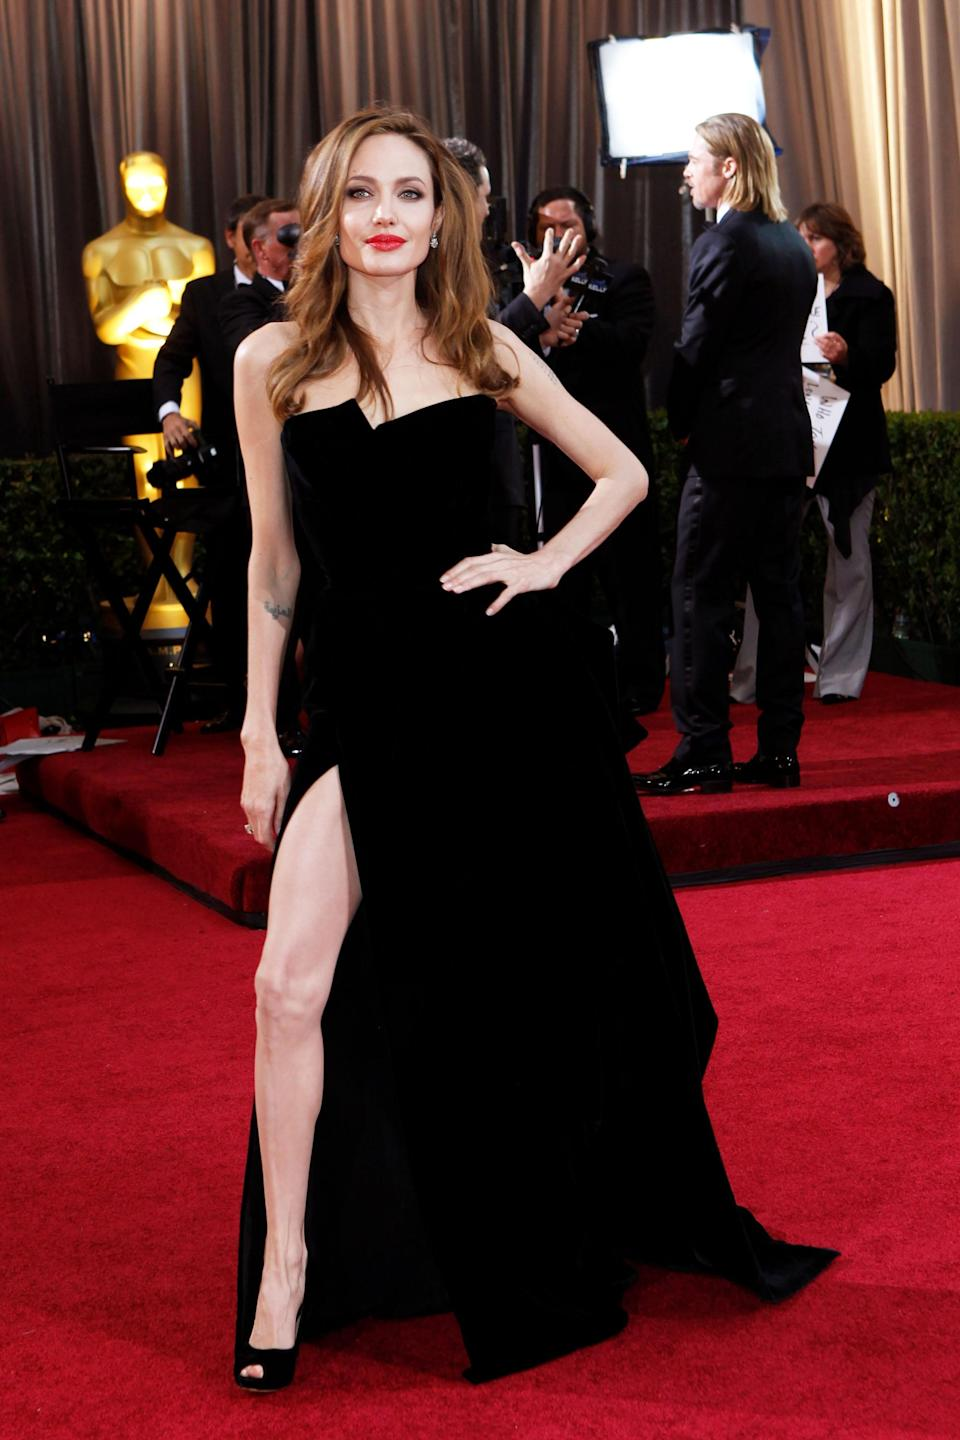 """<h2>Angelina Jolie, 2012</h2><br>No one does a high slit quite like Mrs. Smith herself, Angelina Jolie, who generated one of the greatest Oscar memes ever with this pose.<br><br><em>Angelina Jolie in Atelier Versace. </em><span class=""""copyright"""">Photo: Donato Sardella/WireImage/Getty Images. </span>"""